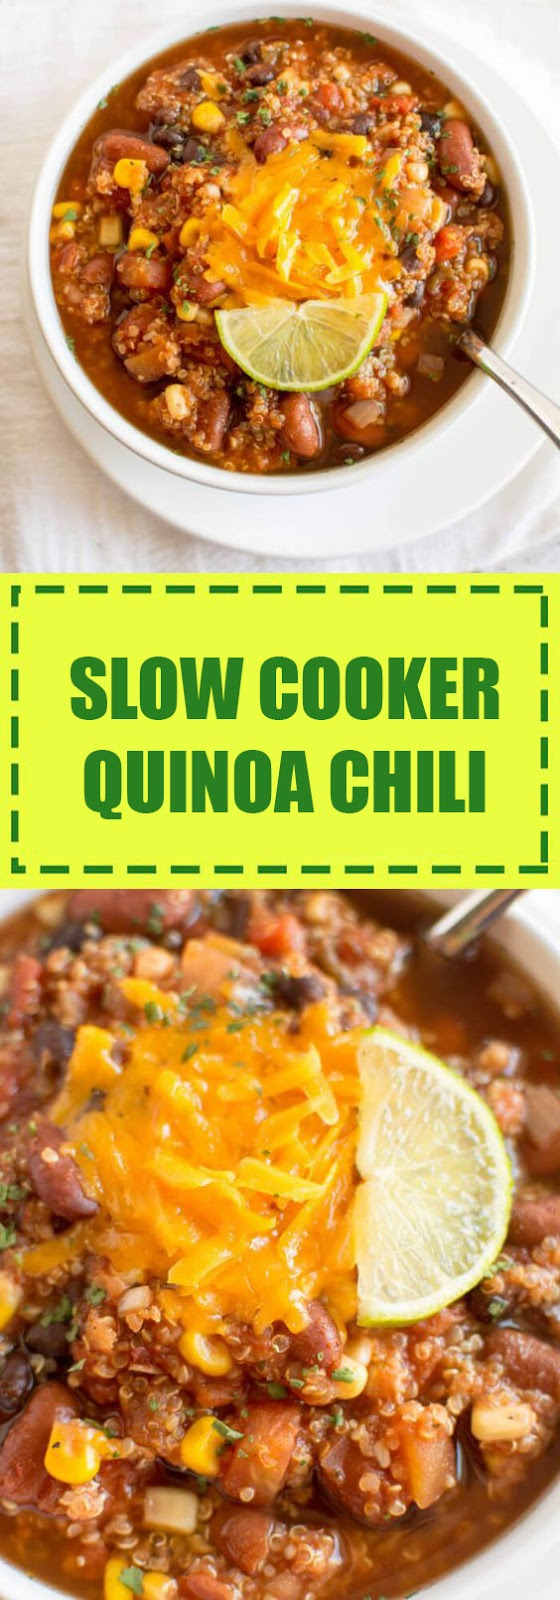 Slow Cooker Quinoa Chili Recipe